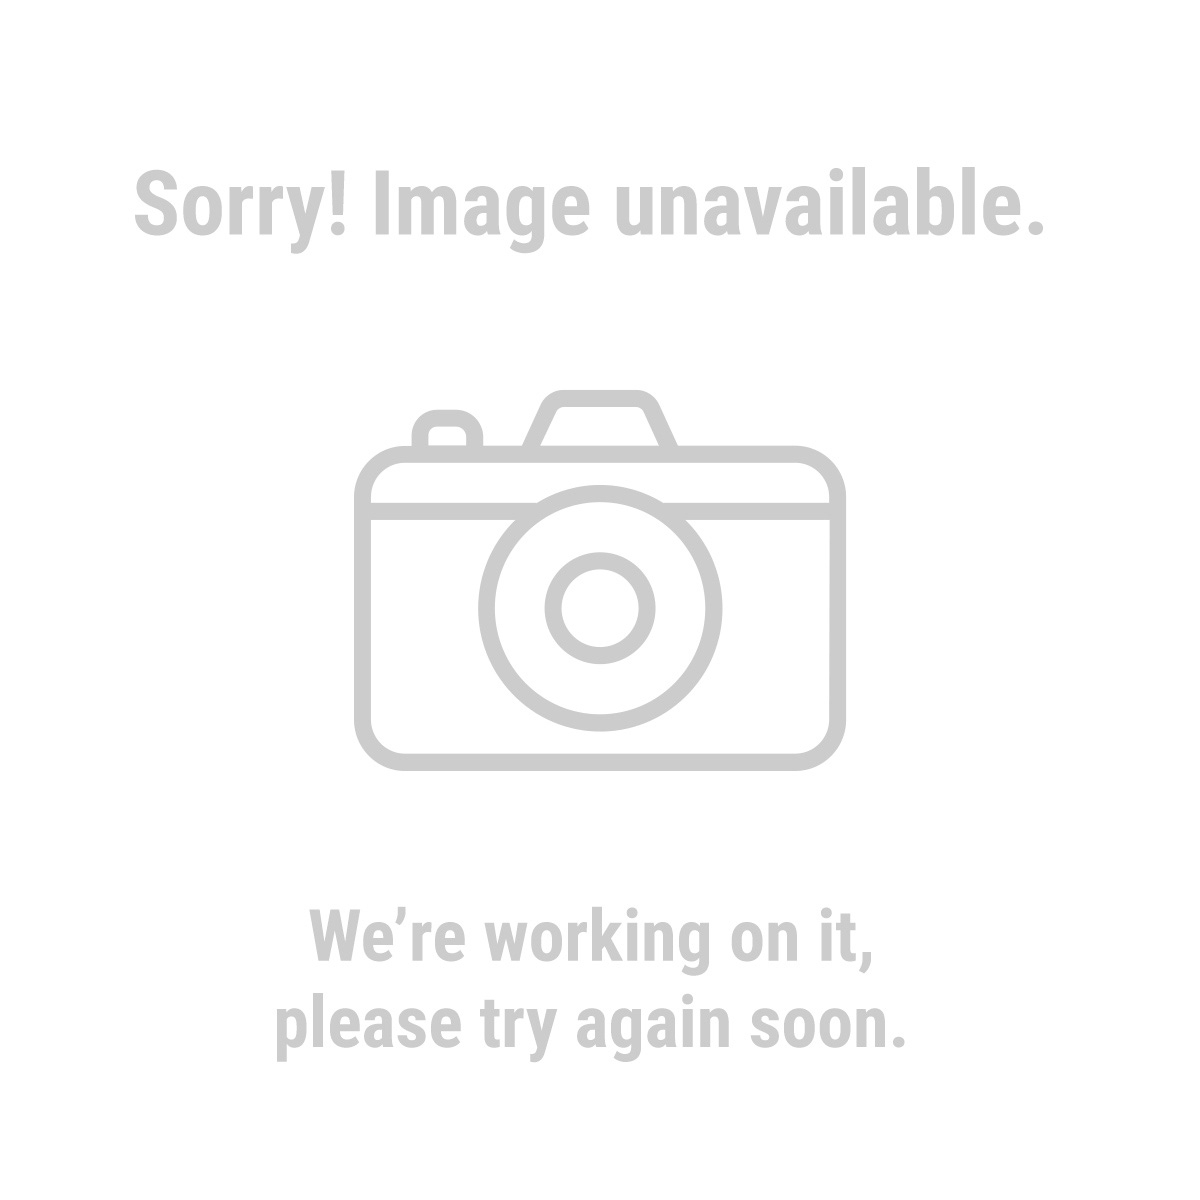 Harbor Freight 5 Drawer Tool Cart : Build a tool caddy model railroad hobbyist magazine